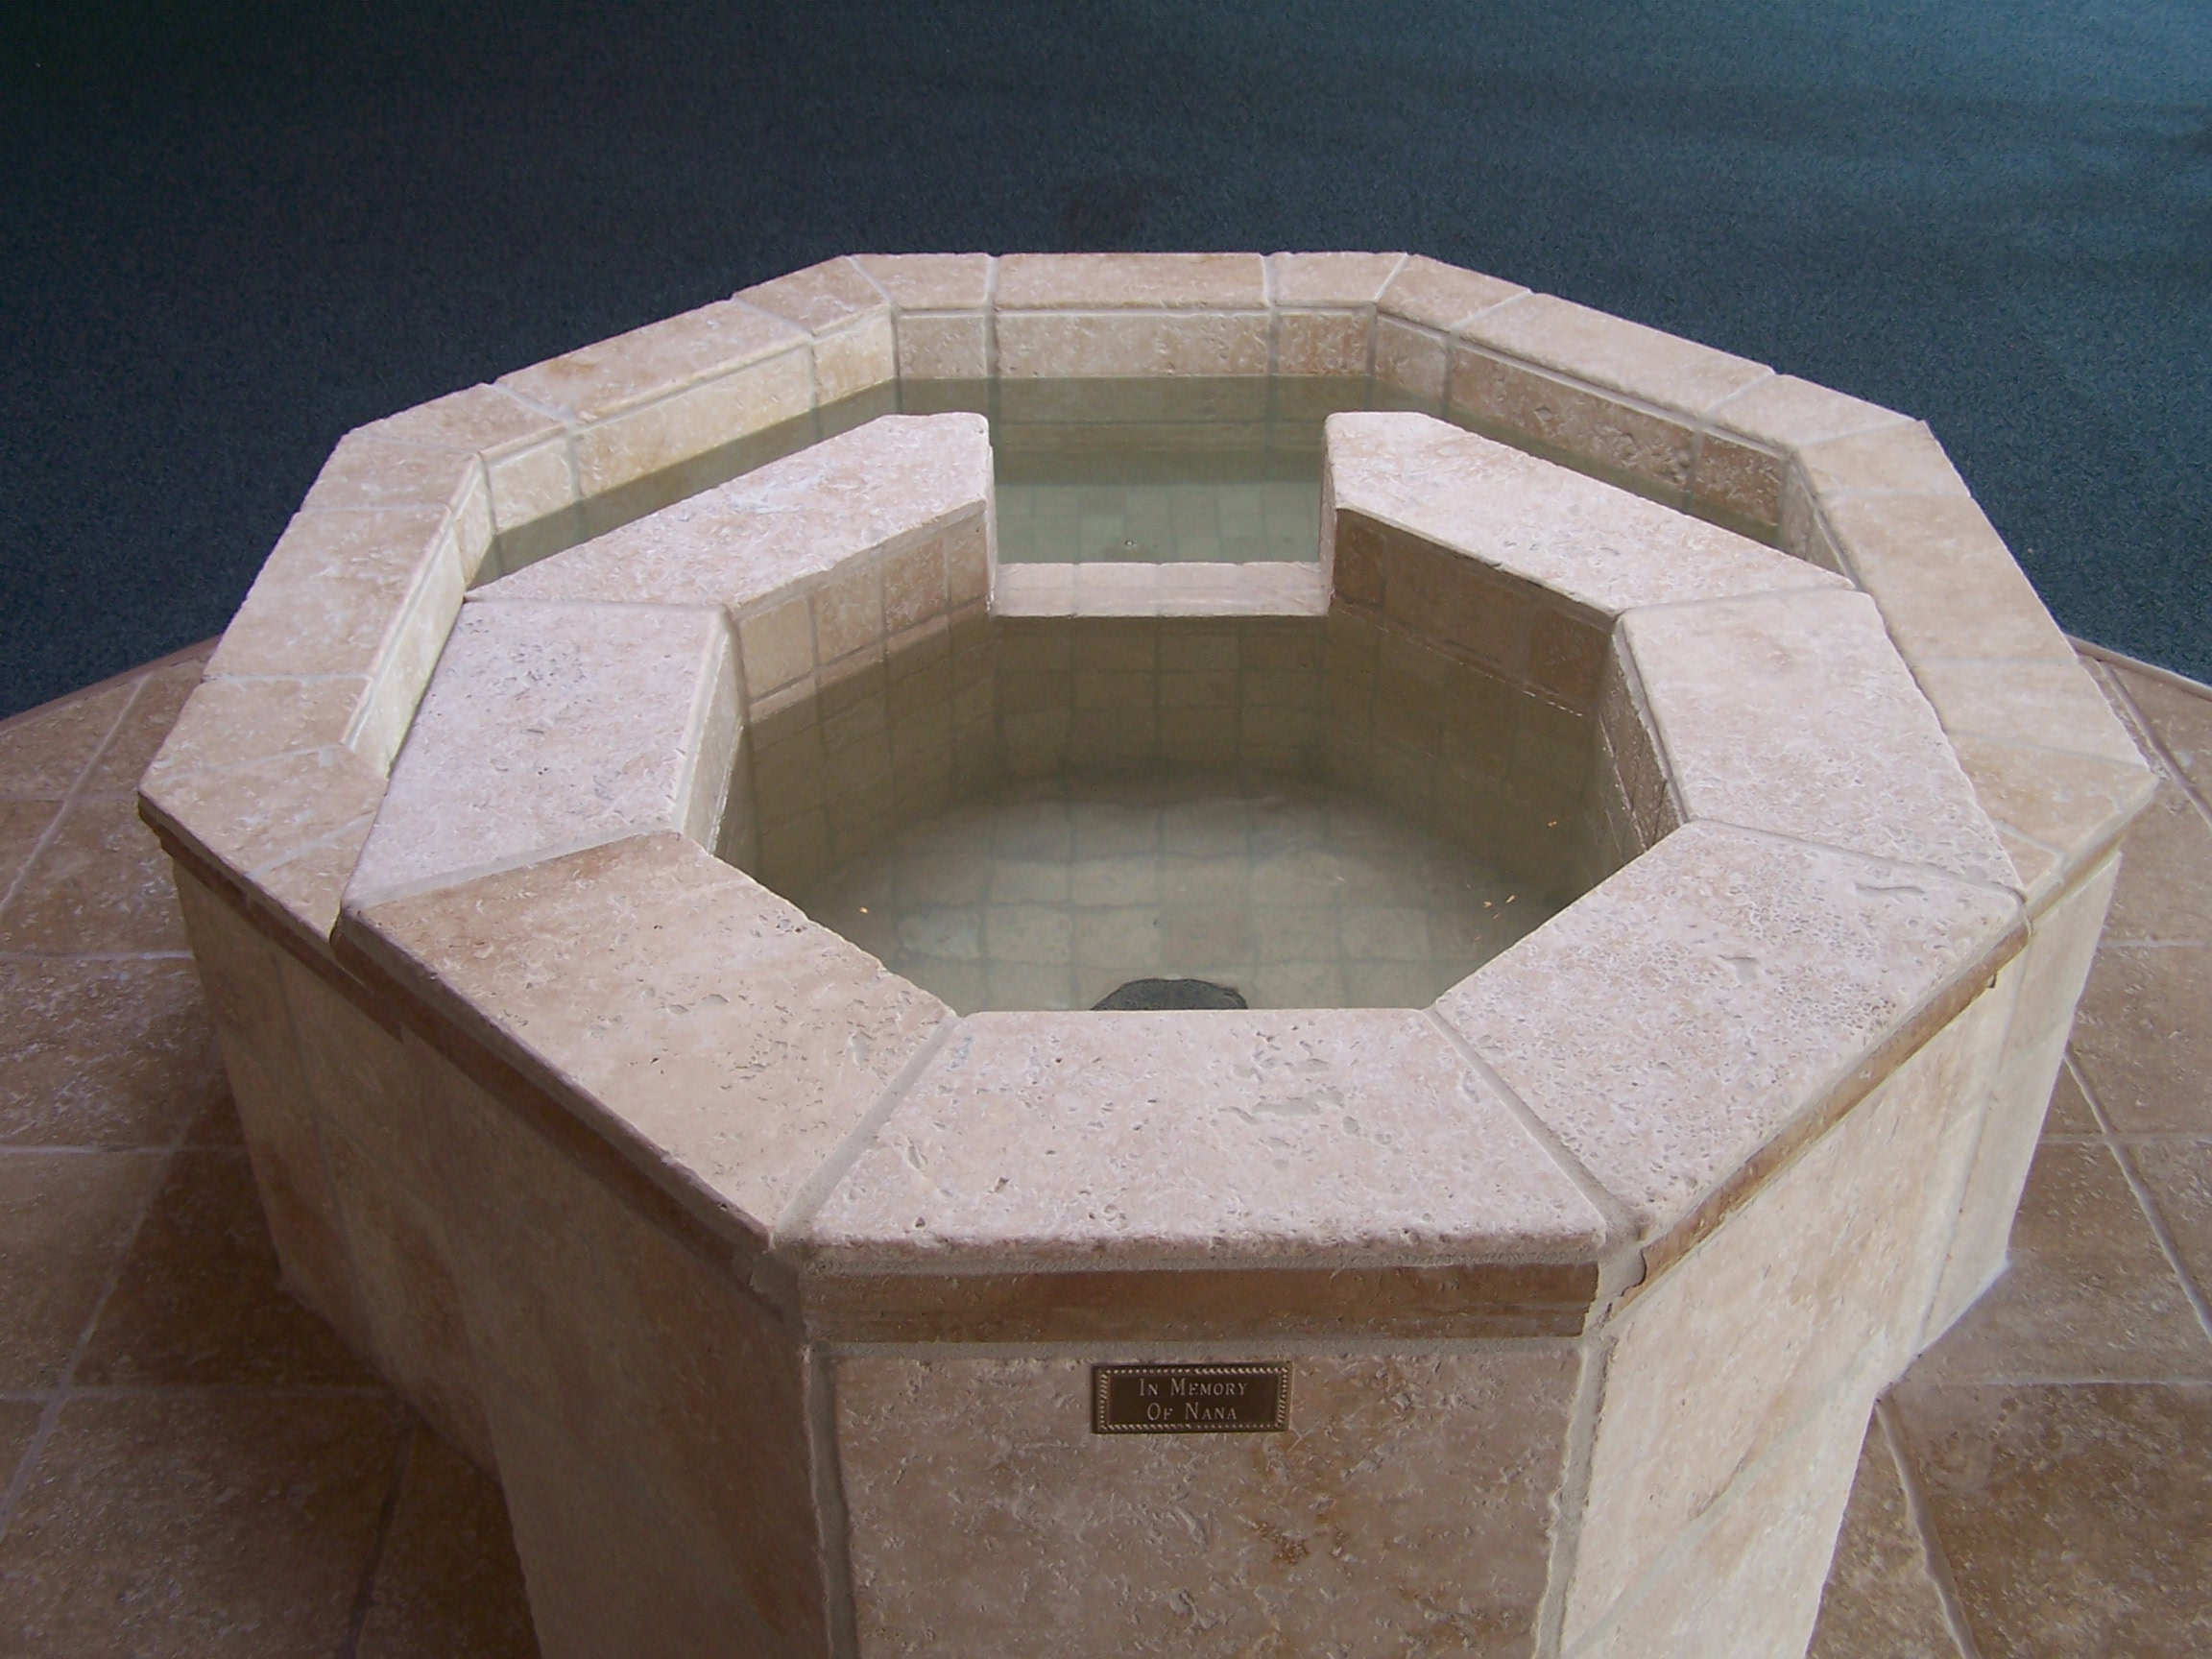 baptismal-font-view-from-above-grace-lutheran-church-hockessin-de-by-water-structures